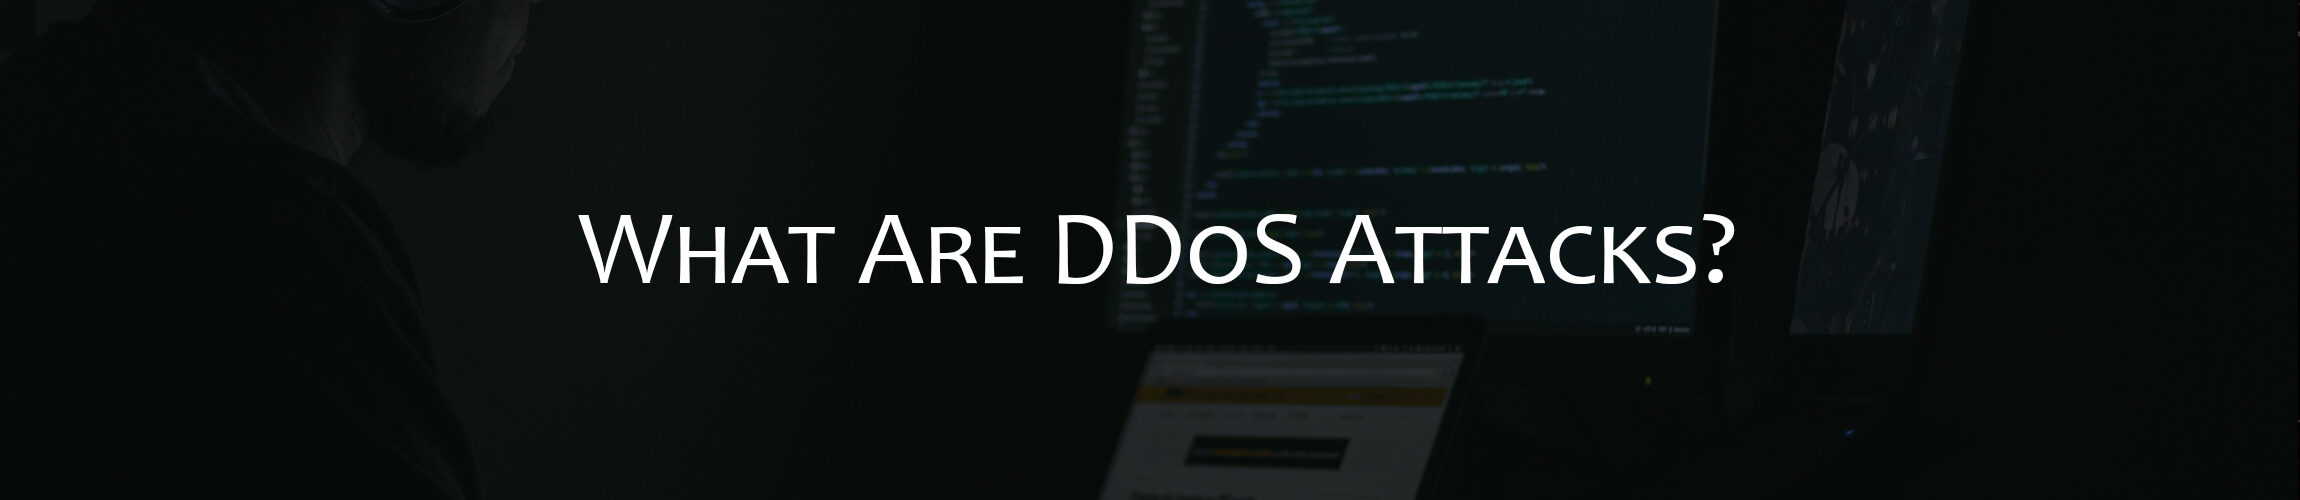 What Are DDoS Attacks?